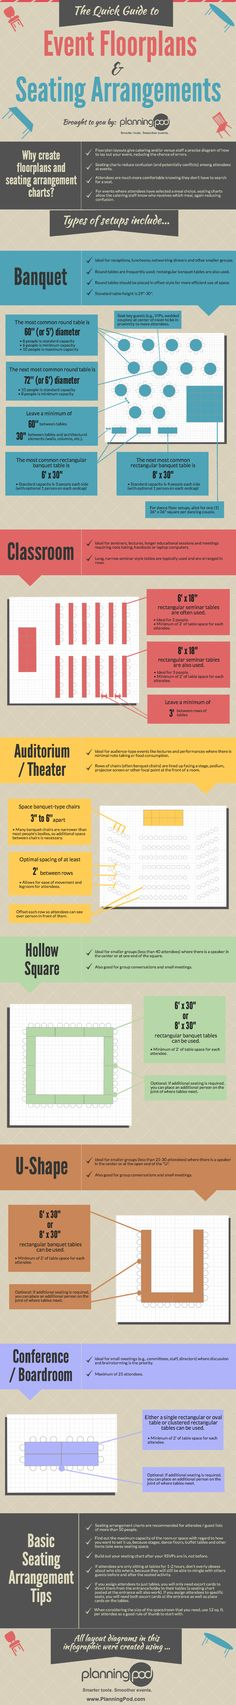 Get an at-a-glance look at the basics of creating an event floor plan / seating arrangement / table layout with this helpful infographic.